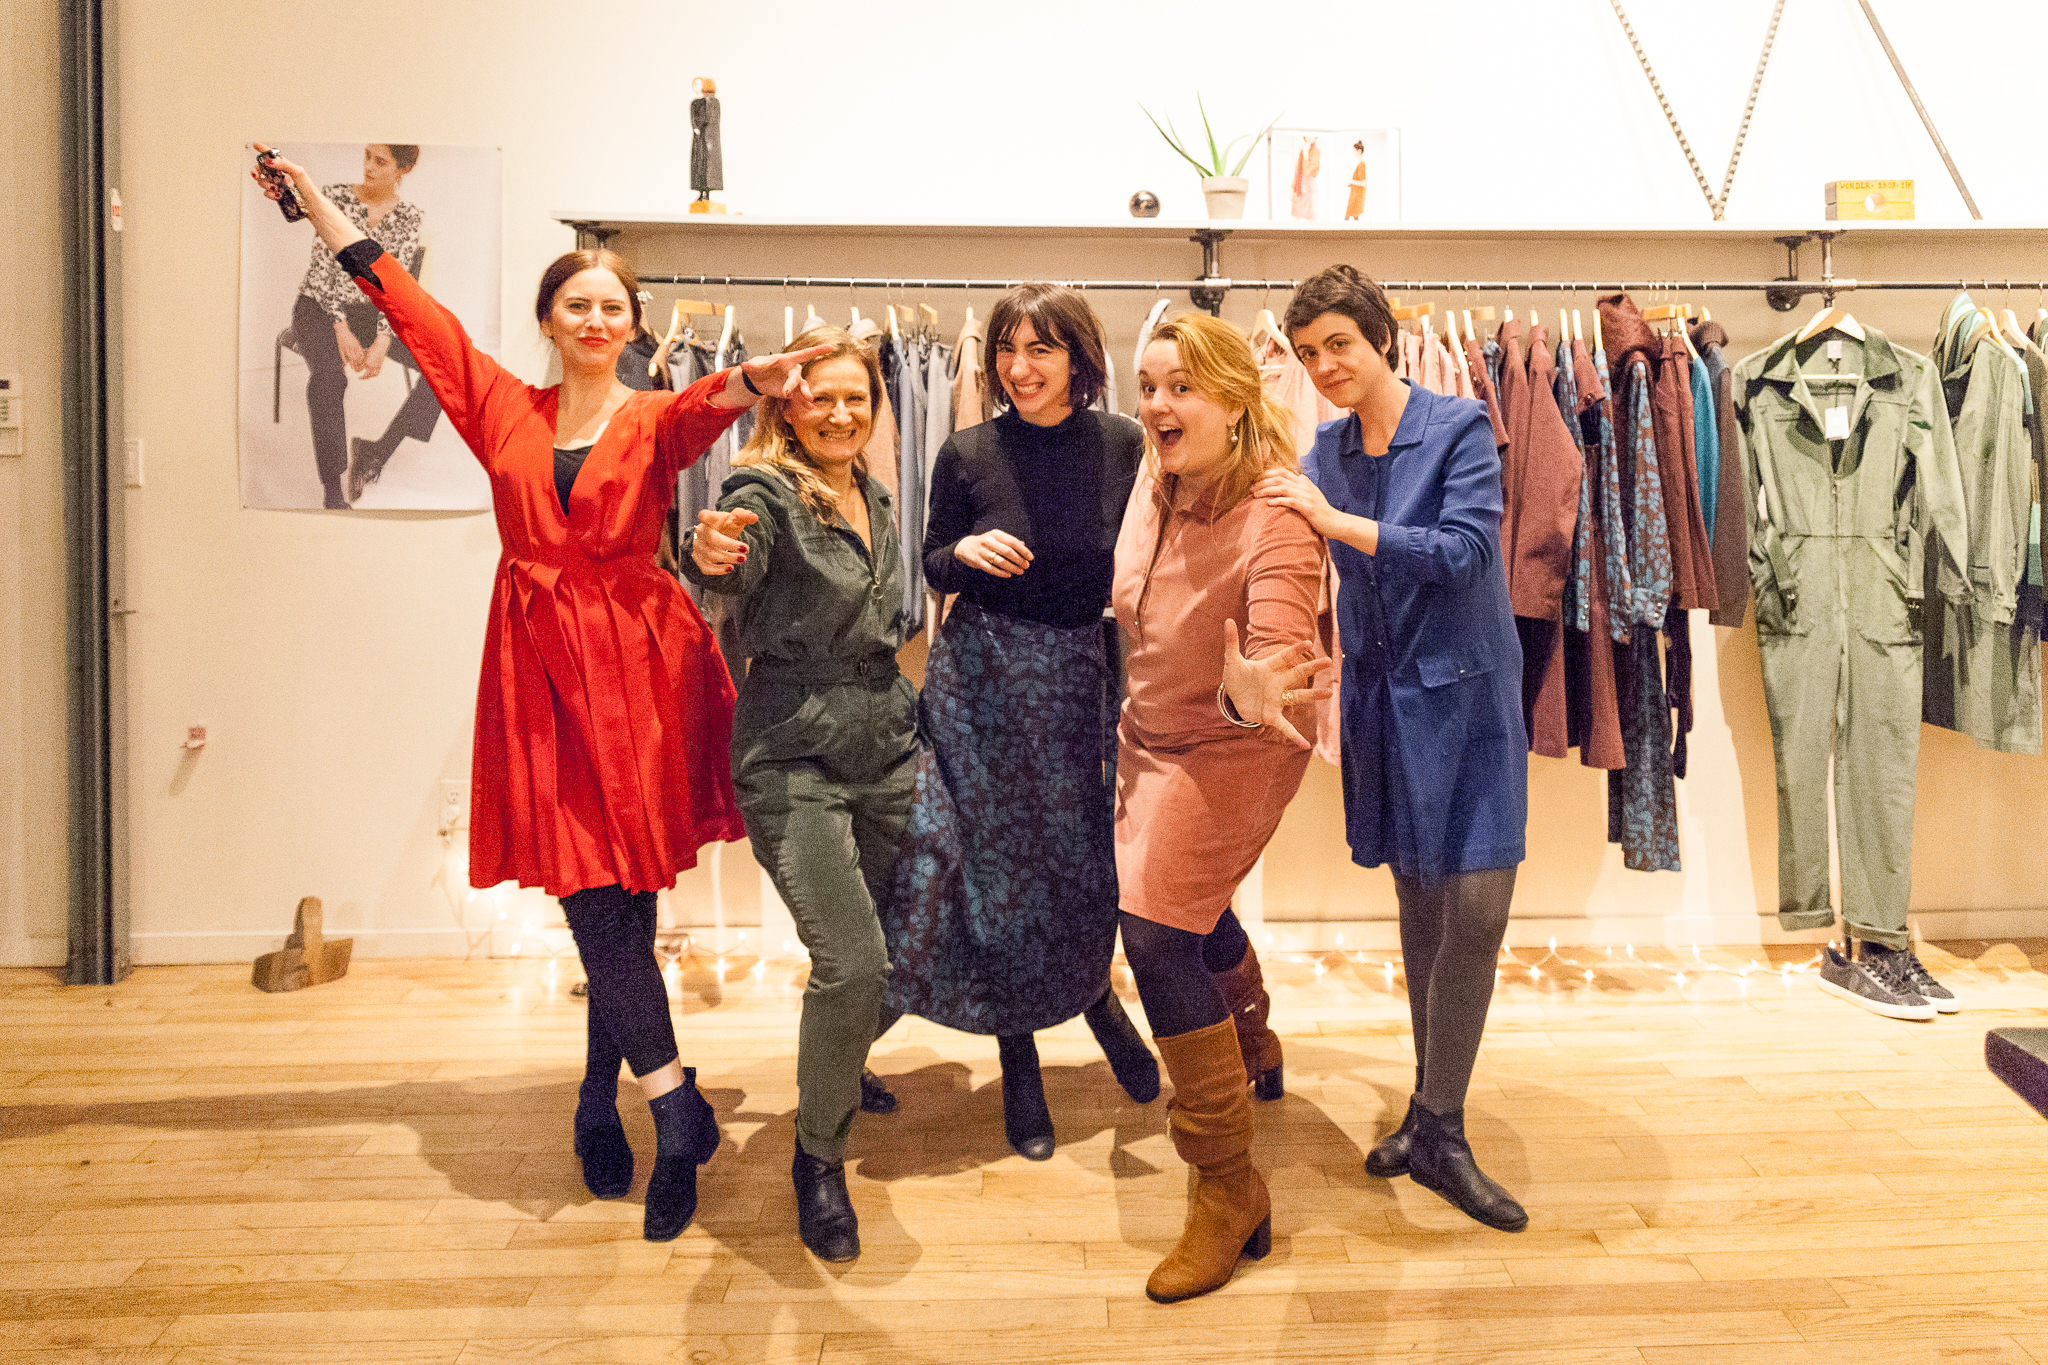 camuglia_anne-willi-holiday-party-nyc-2018_0106_2048.jpg